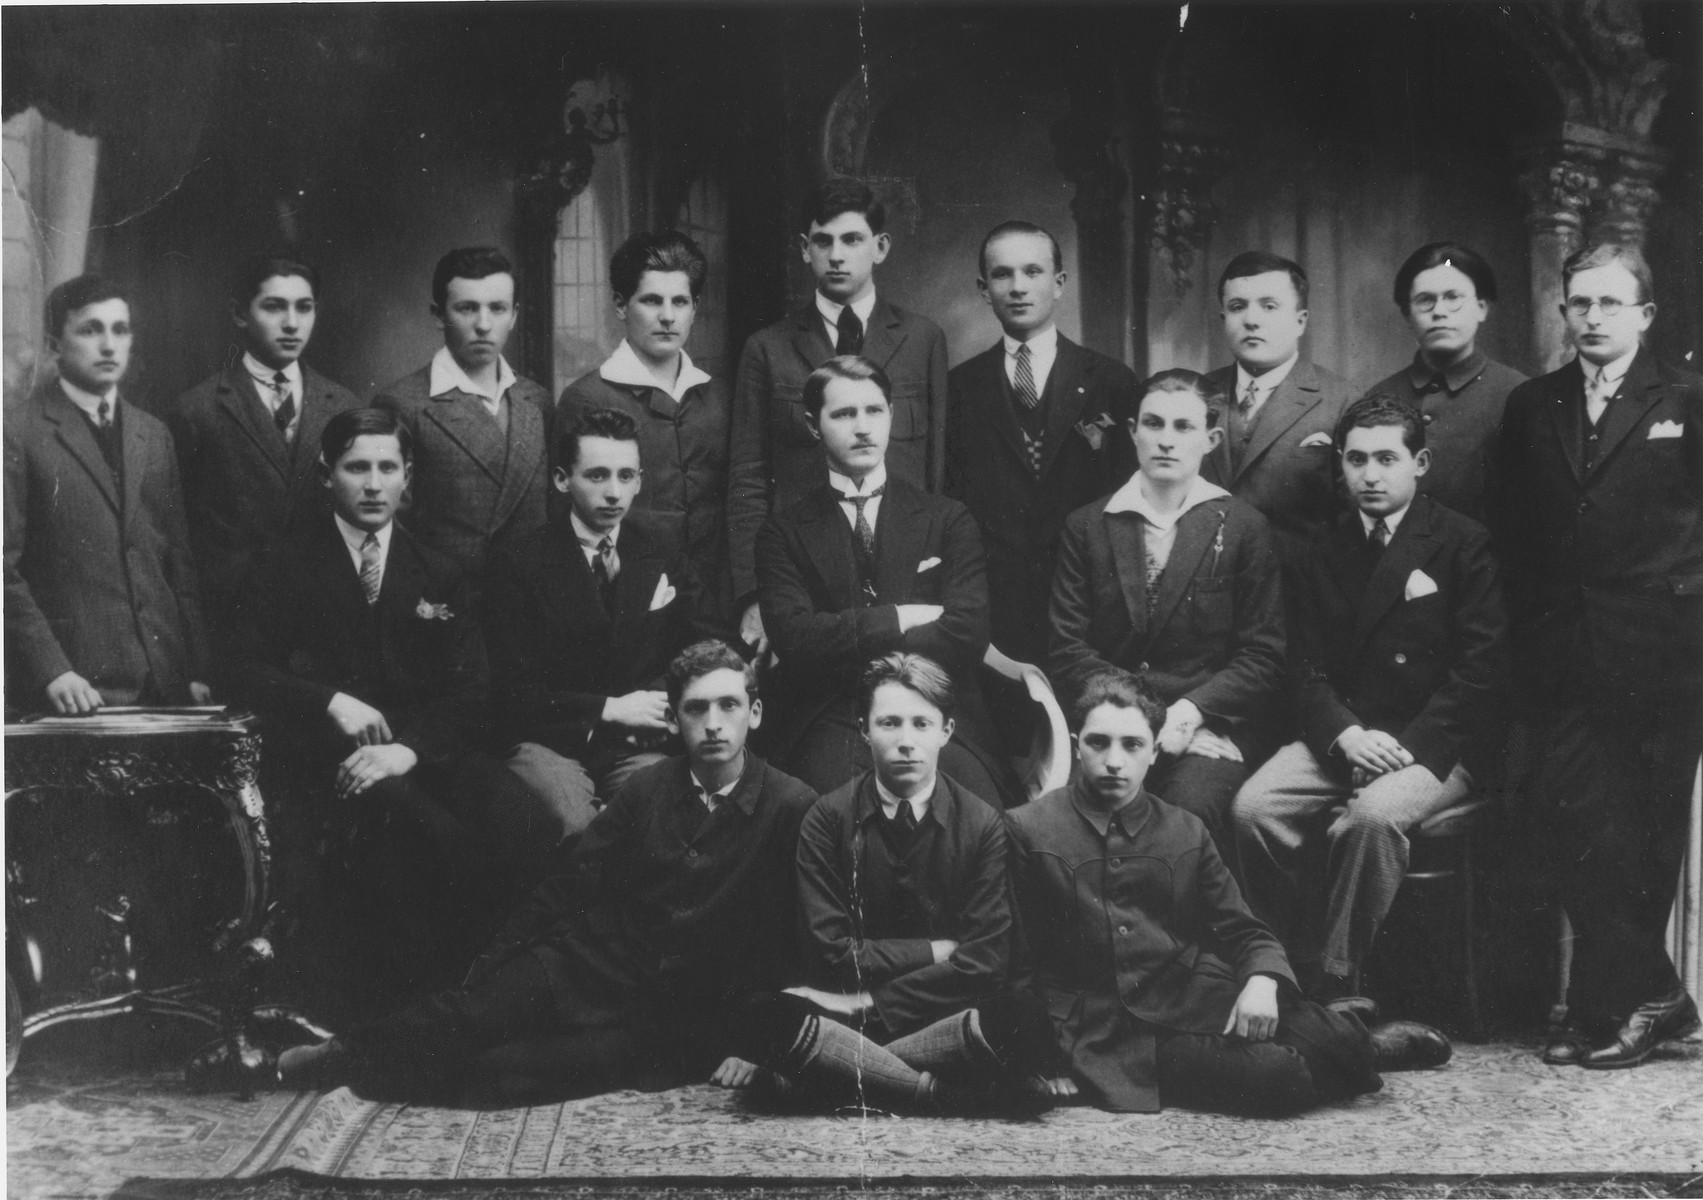 Group portrait of the 1929 graduating class of the Jewish public high school (no. 3) in Cernauti.    Among those pictured are Manfred Derman (top row, center); Manfred Buxbaum (top row, third from the left); and Jacob Flexor (middle row, second from the left).